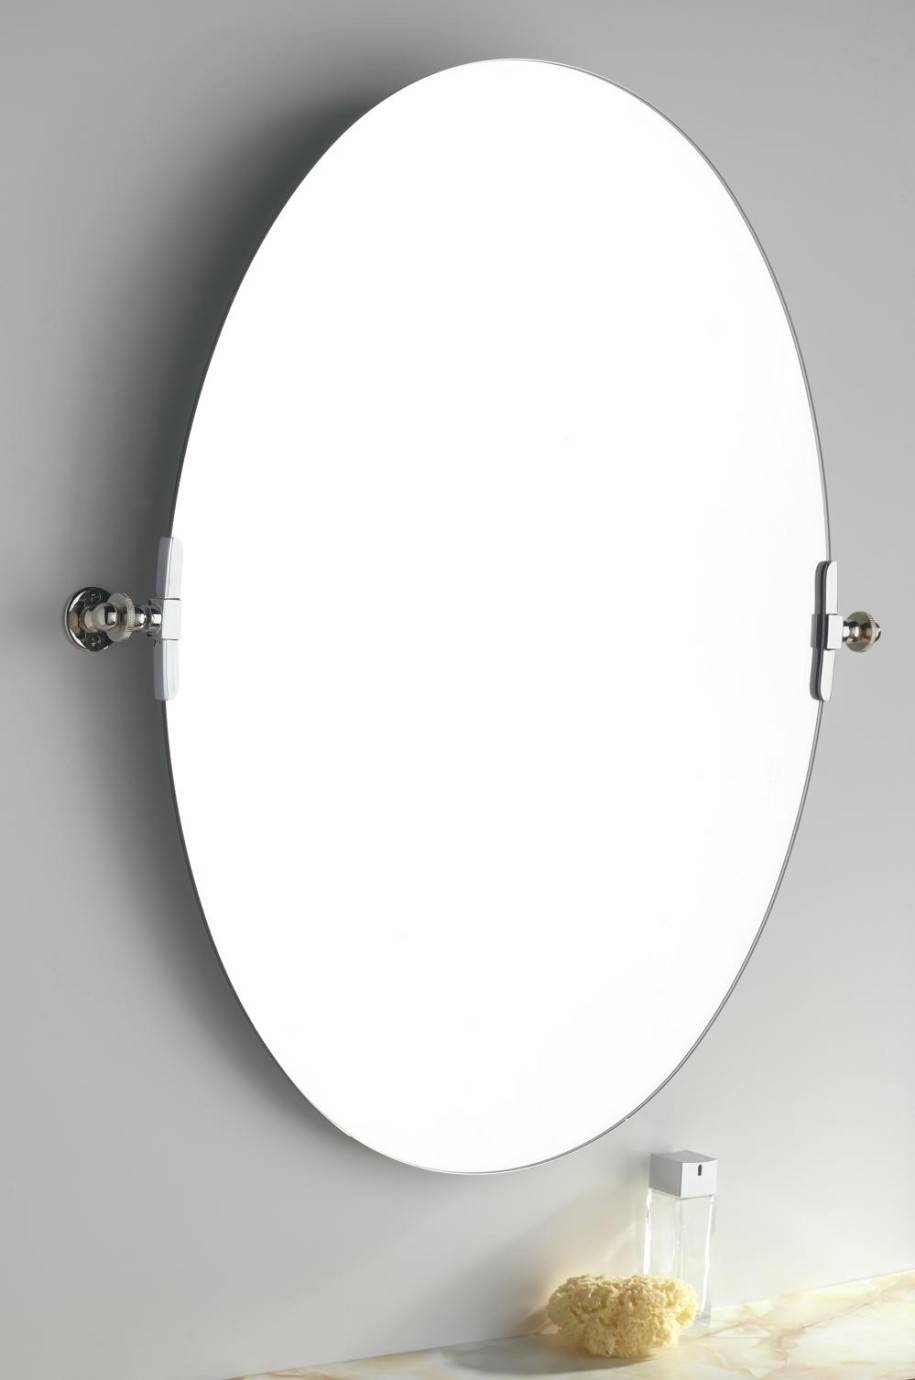 Large Oval Mirrors For Bathroom Walls | Home pertaining to Oval Mirrors for Walls (Image 13 of 25)